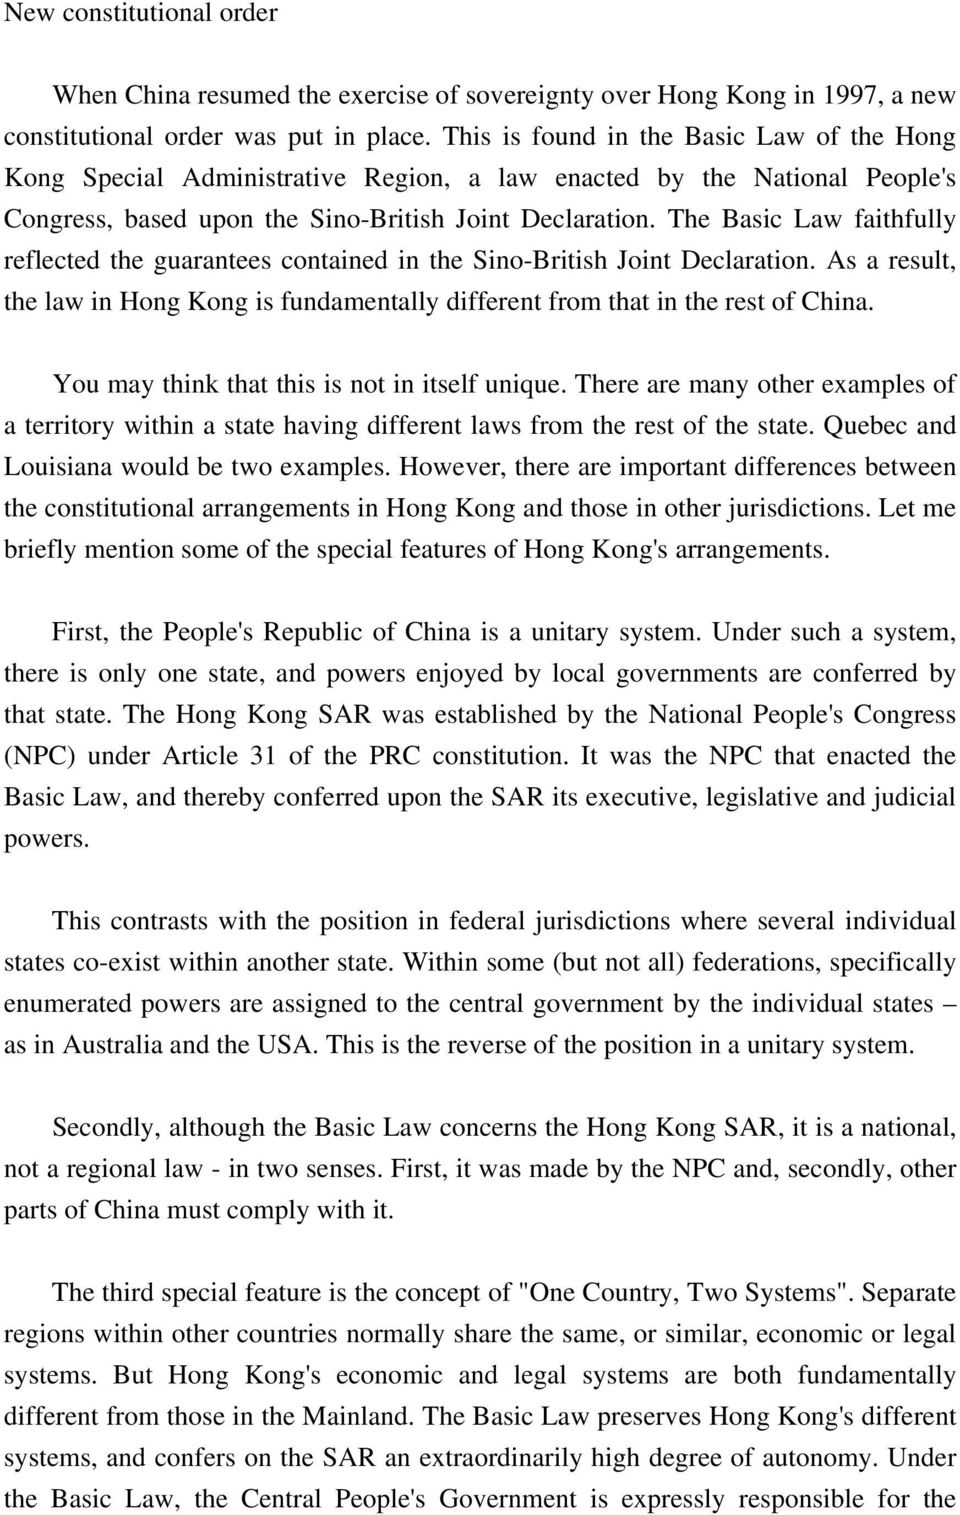 The Basic Law faithfully reflected the guarantees contained in the Sino-British Joint Declaration. As a result, the law in Hong Kong is fundamentally different from that in the rest of China.